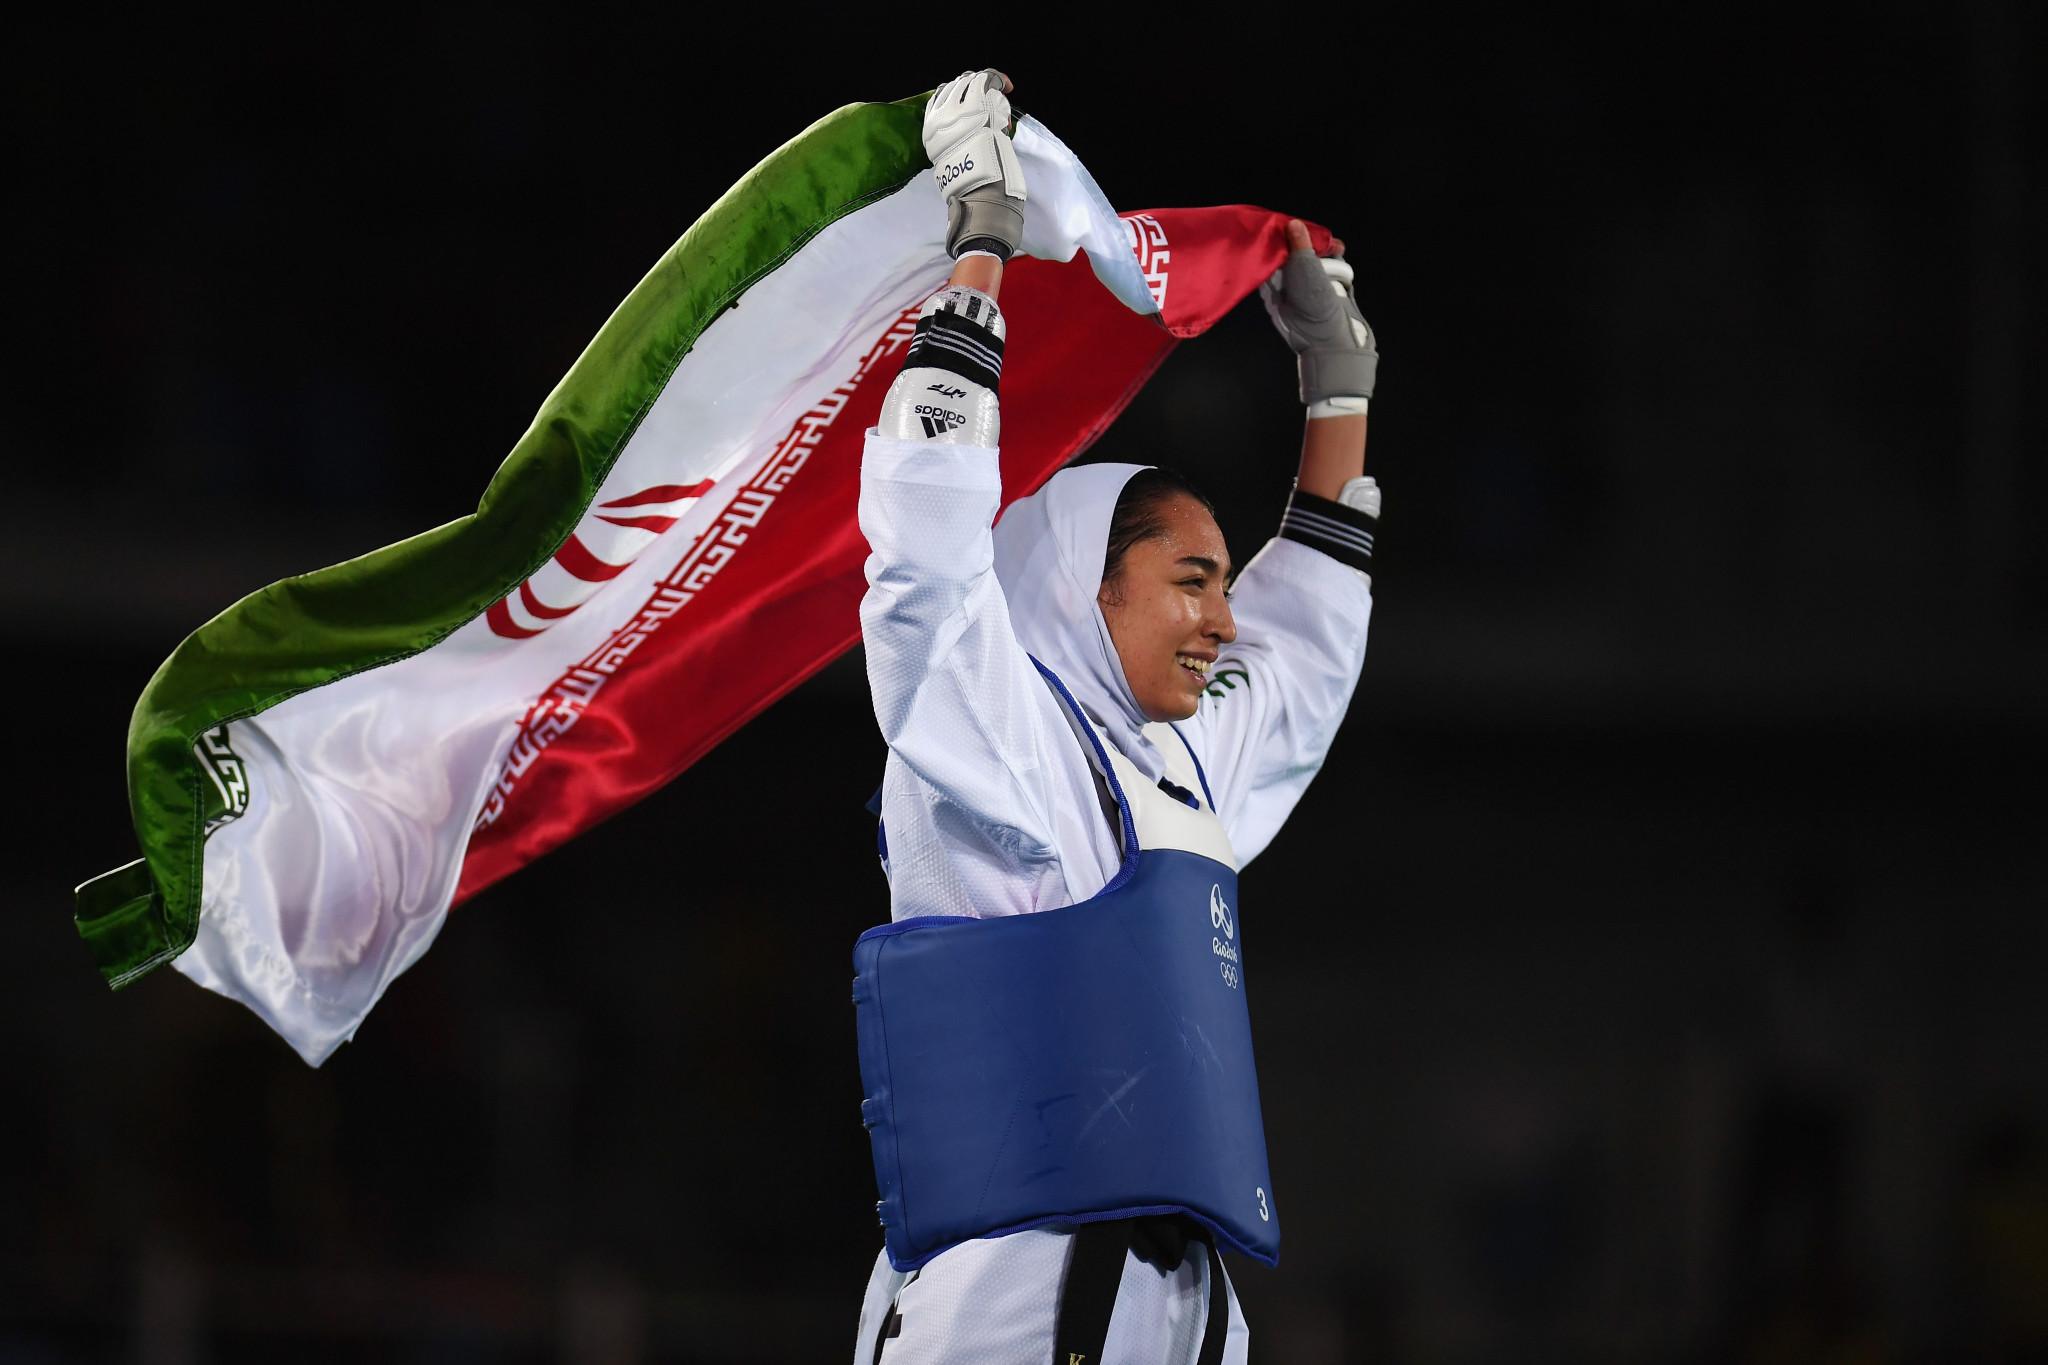 Iranian taekwondo player Kimia Alizadeh could be forced to retire from the sport after picking up an injury that ruled her out of competing at the 2018 Asian Games ©Getty Images